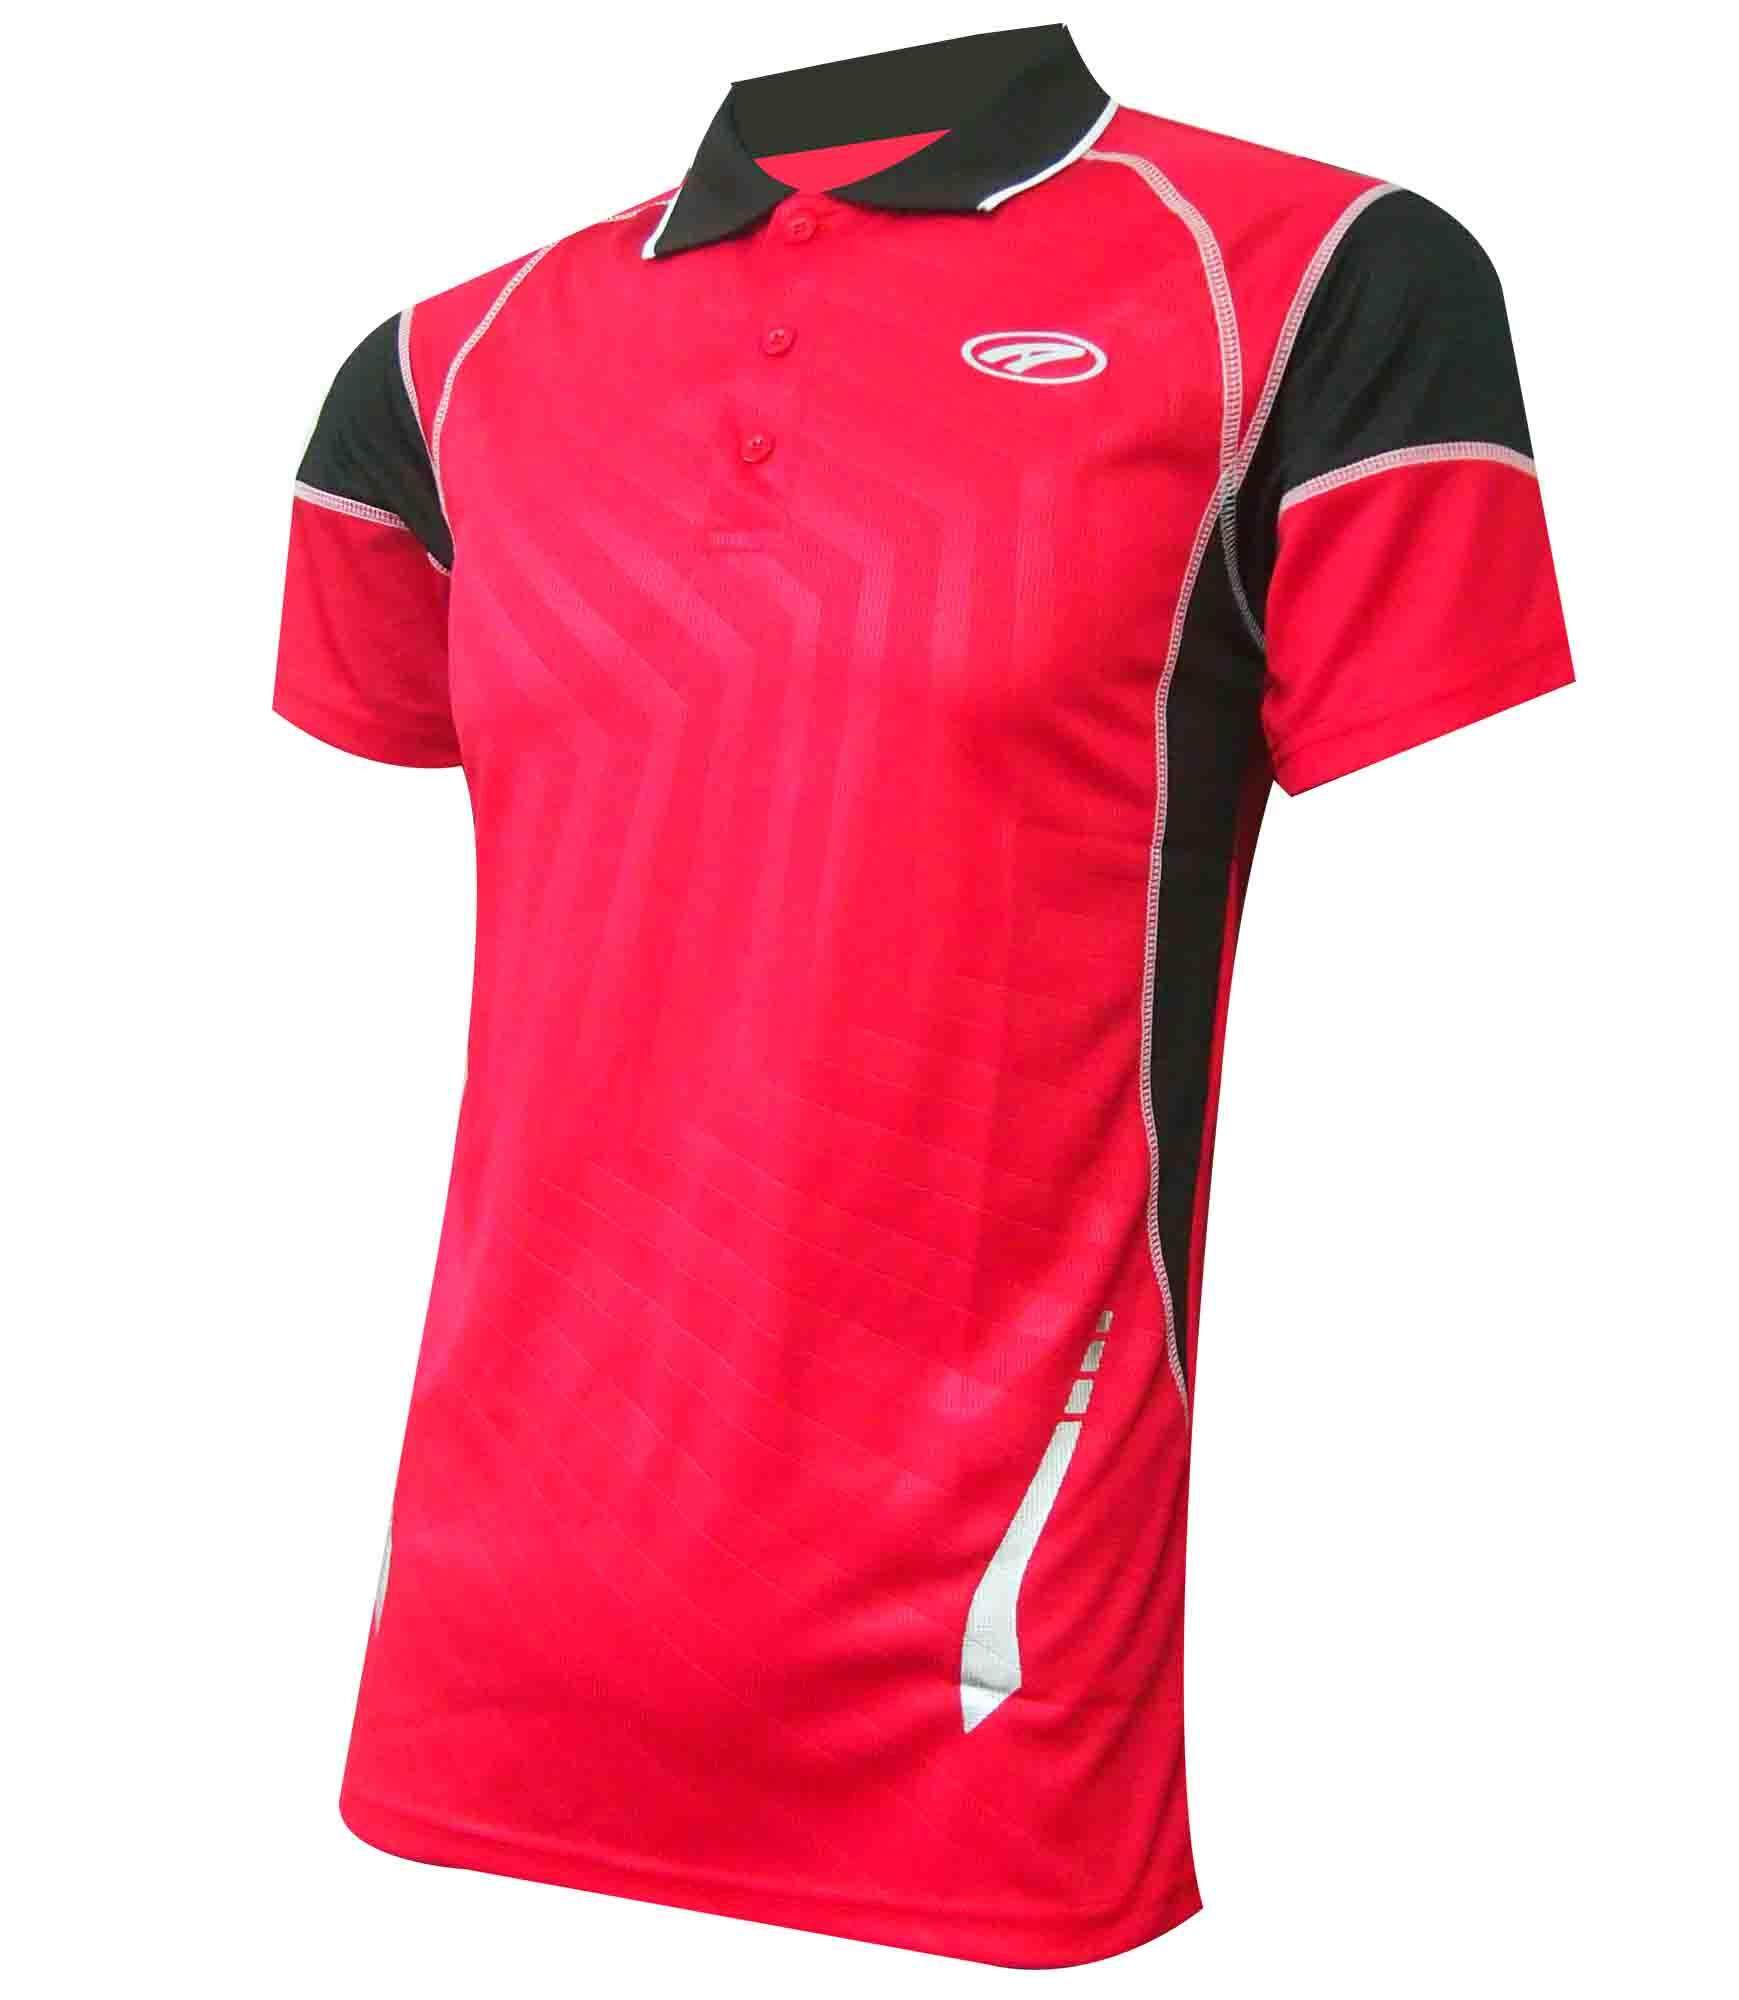 Ambros Polo Collar Jersey for Men - Red/Black